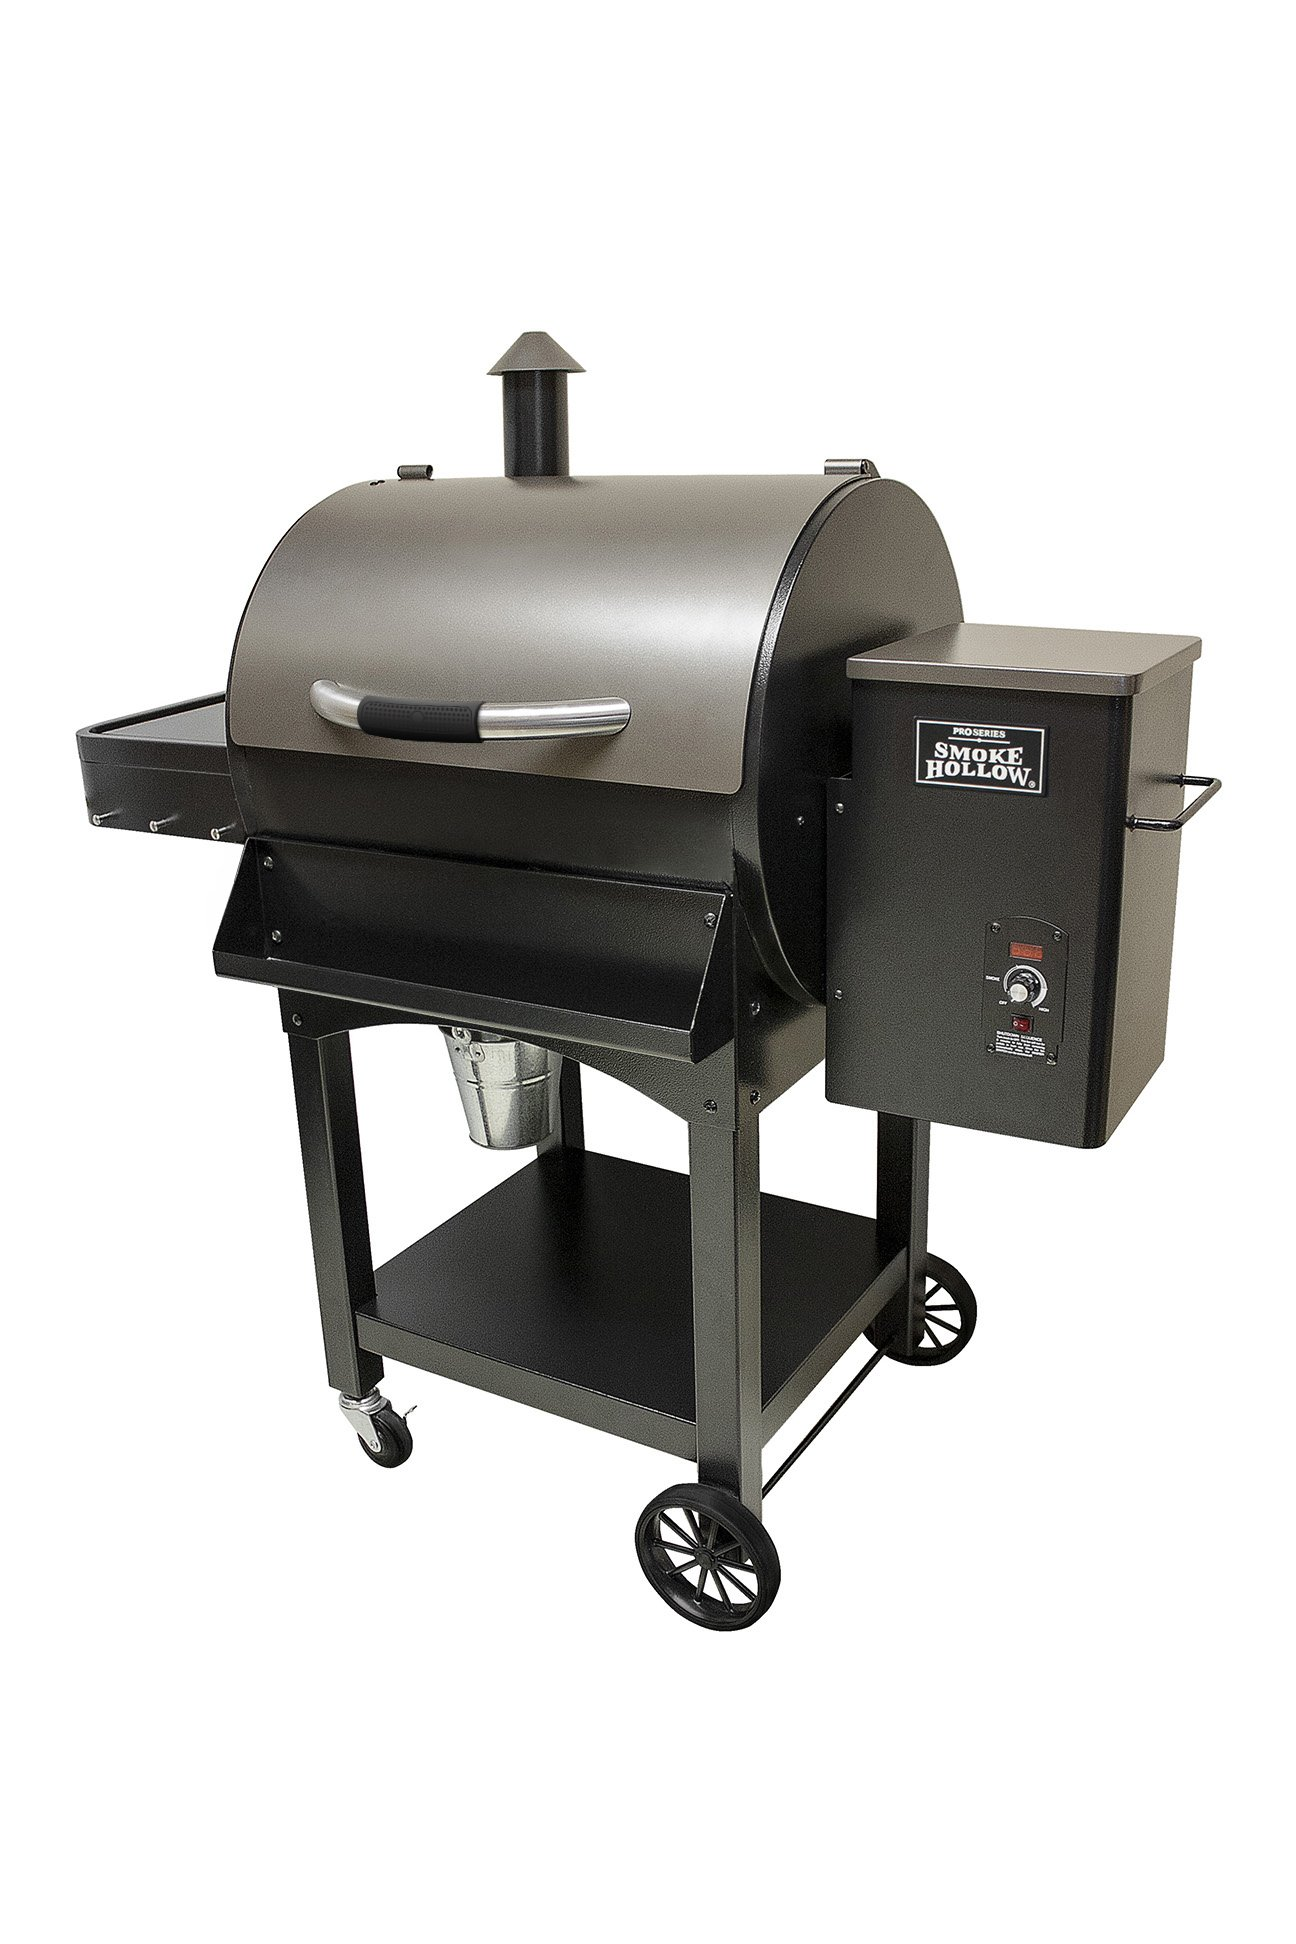 Smoke Hollow 2415PG Pellet Grill, 24'' 480 sq.in Cooking Area